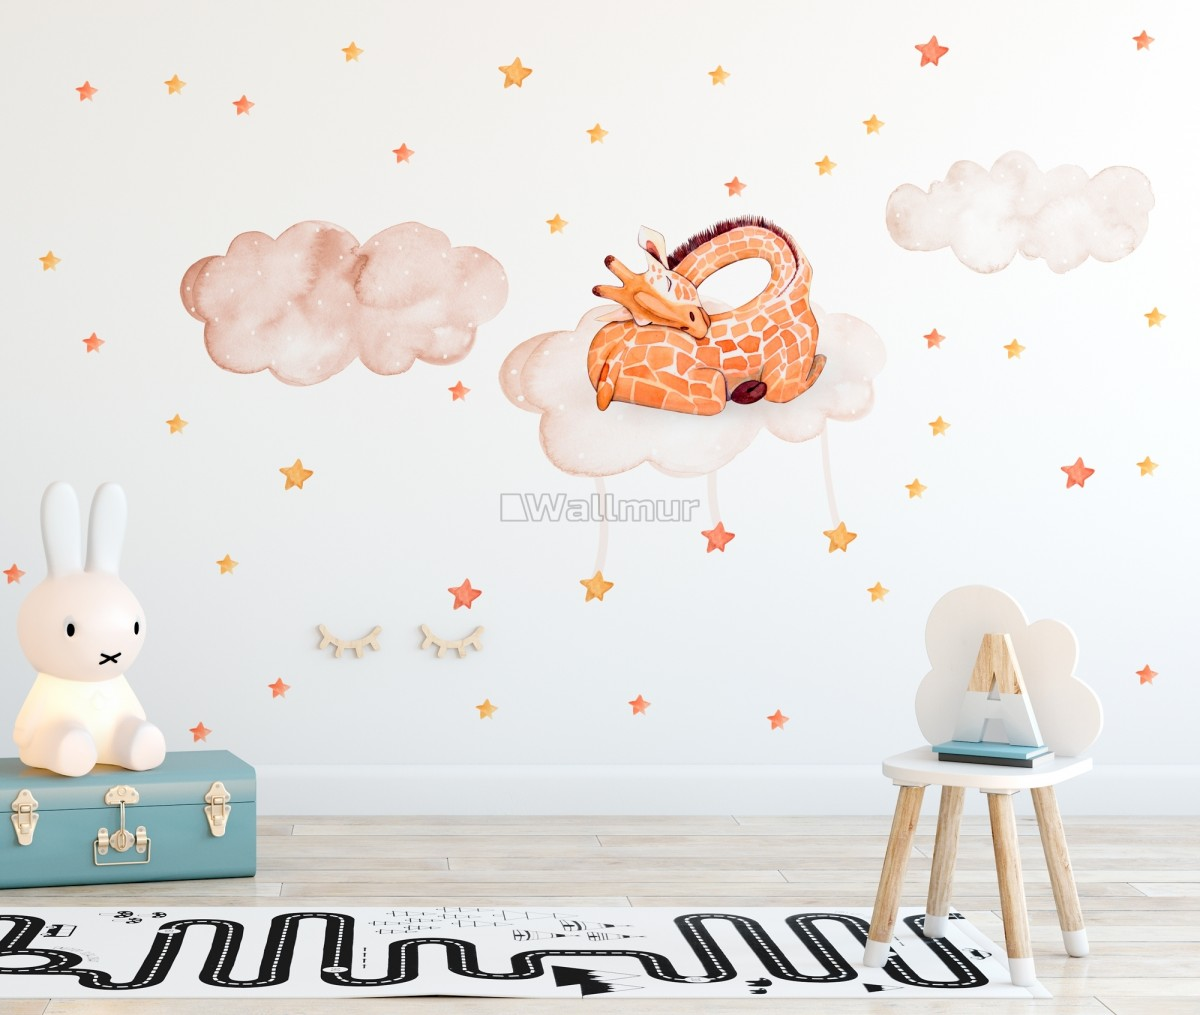 Nursery Watercolor Sleeping Giraffe And Clouds With Little Stars Wall Decal Sticker